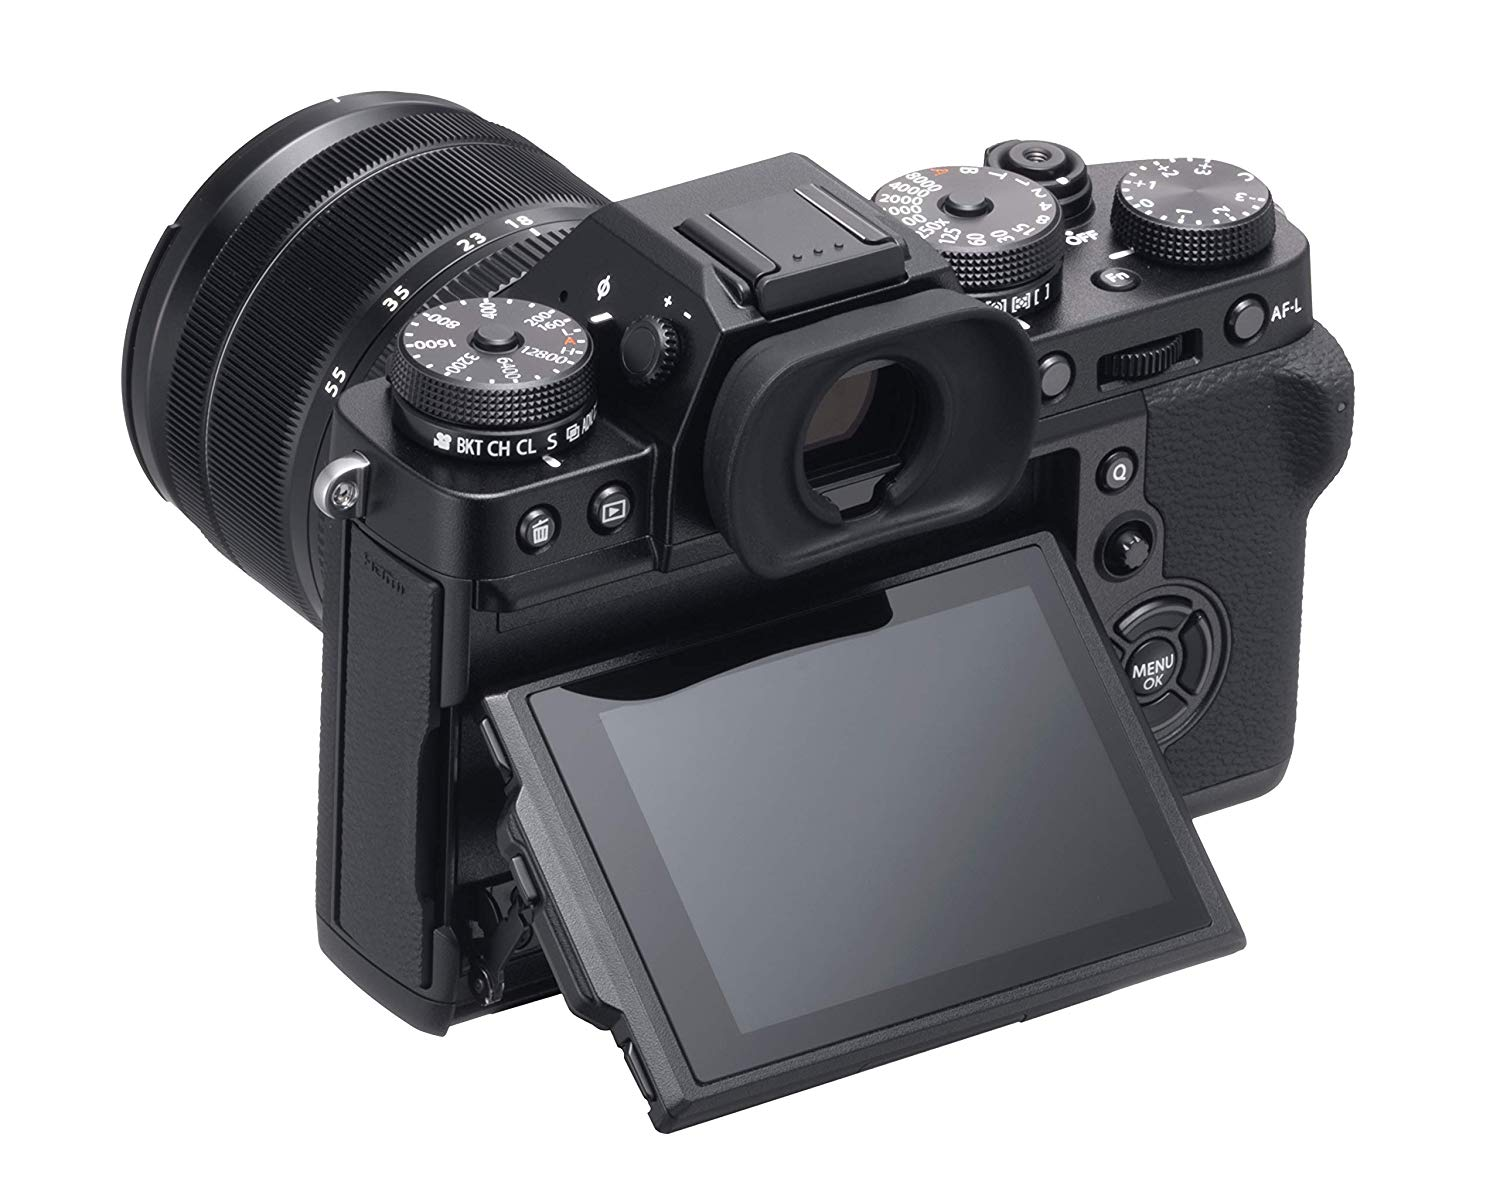 Fujifilm X-T3 Mirrorless Digital Camera3.jpg